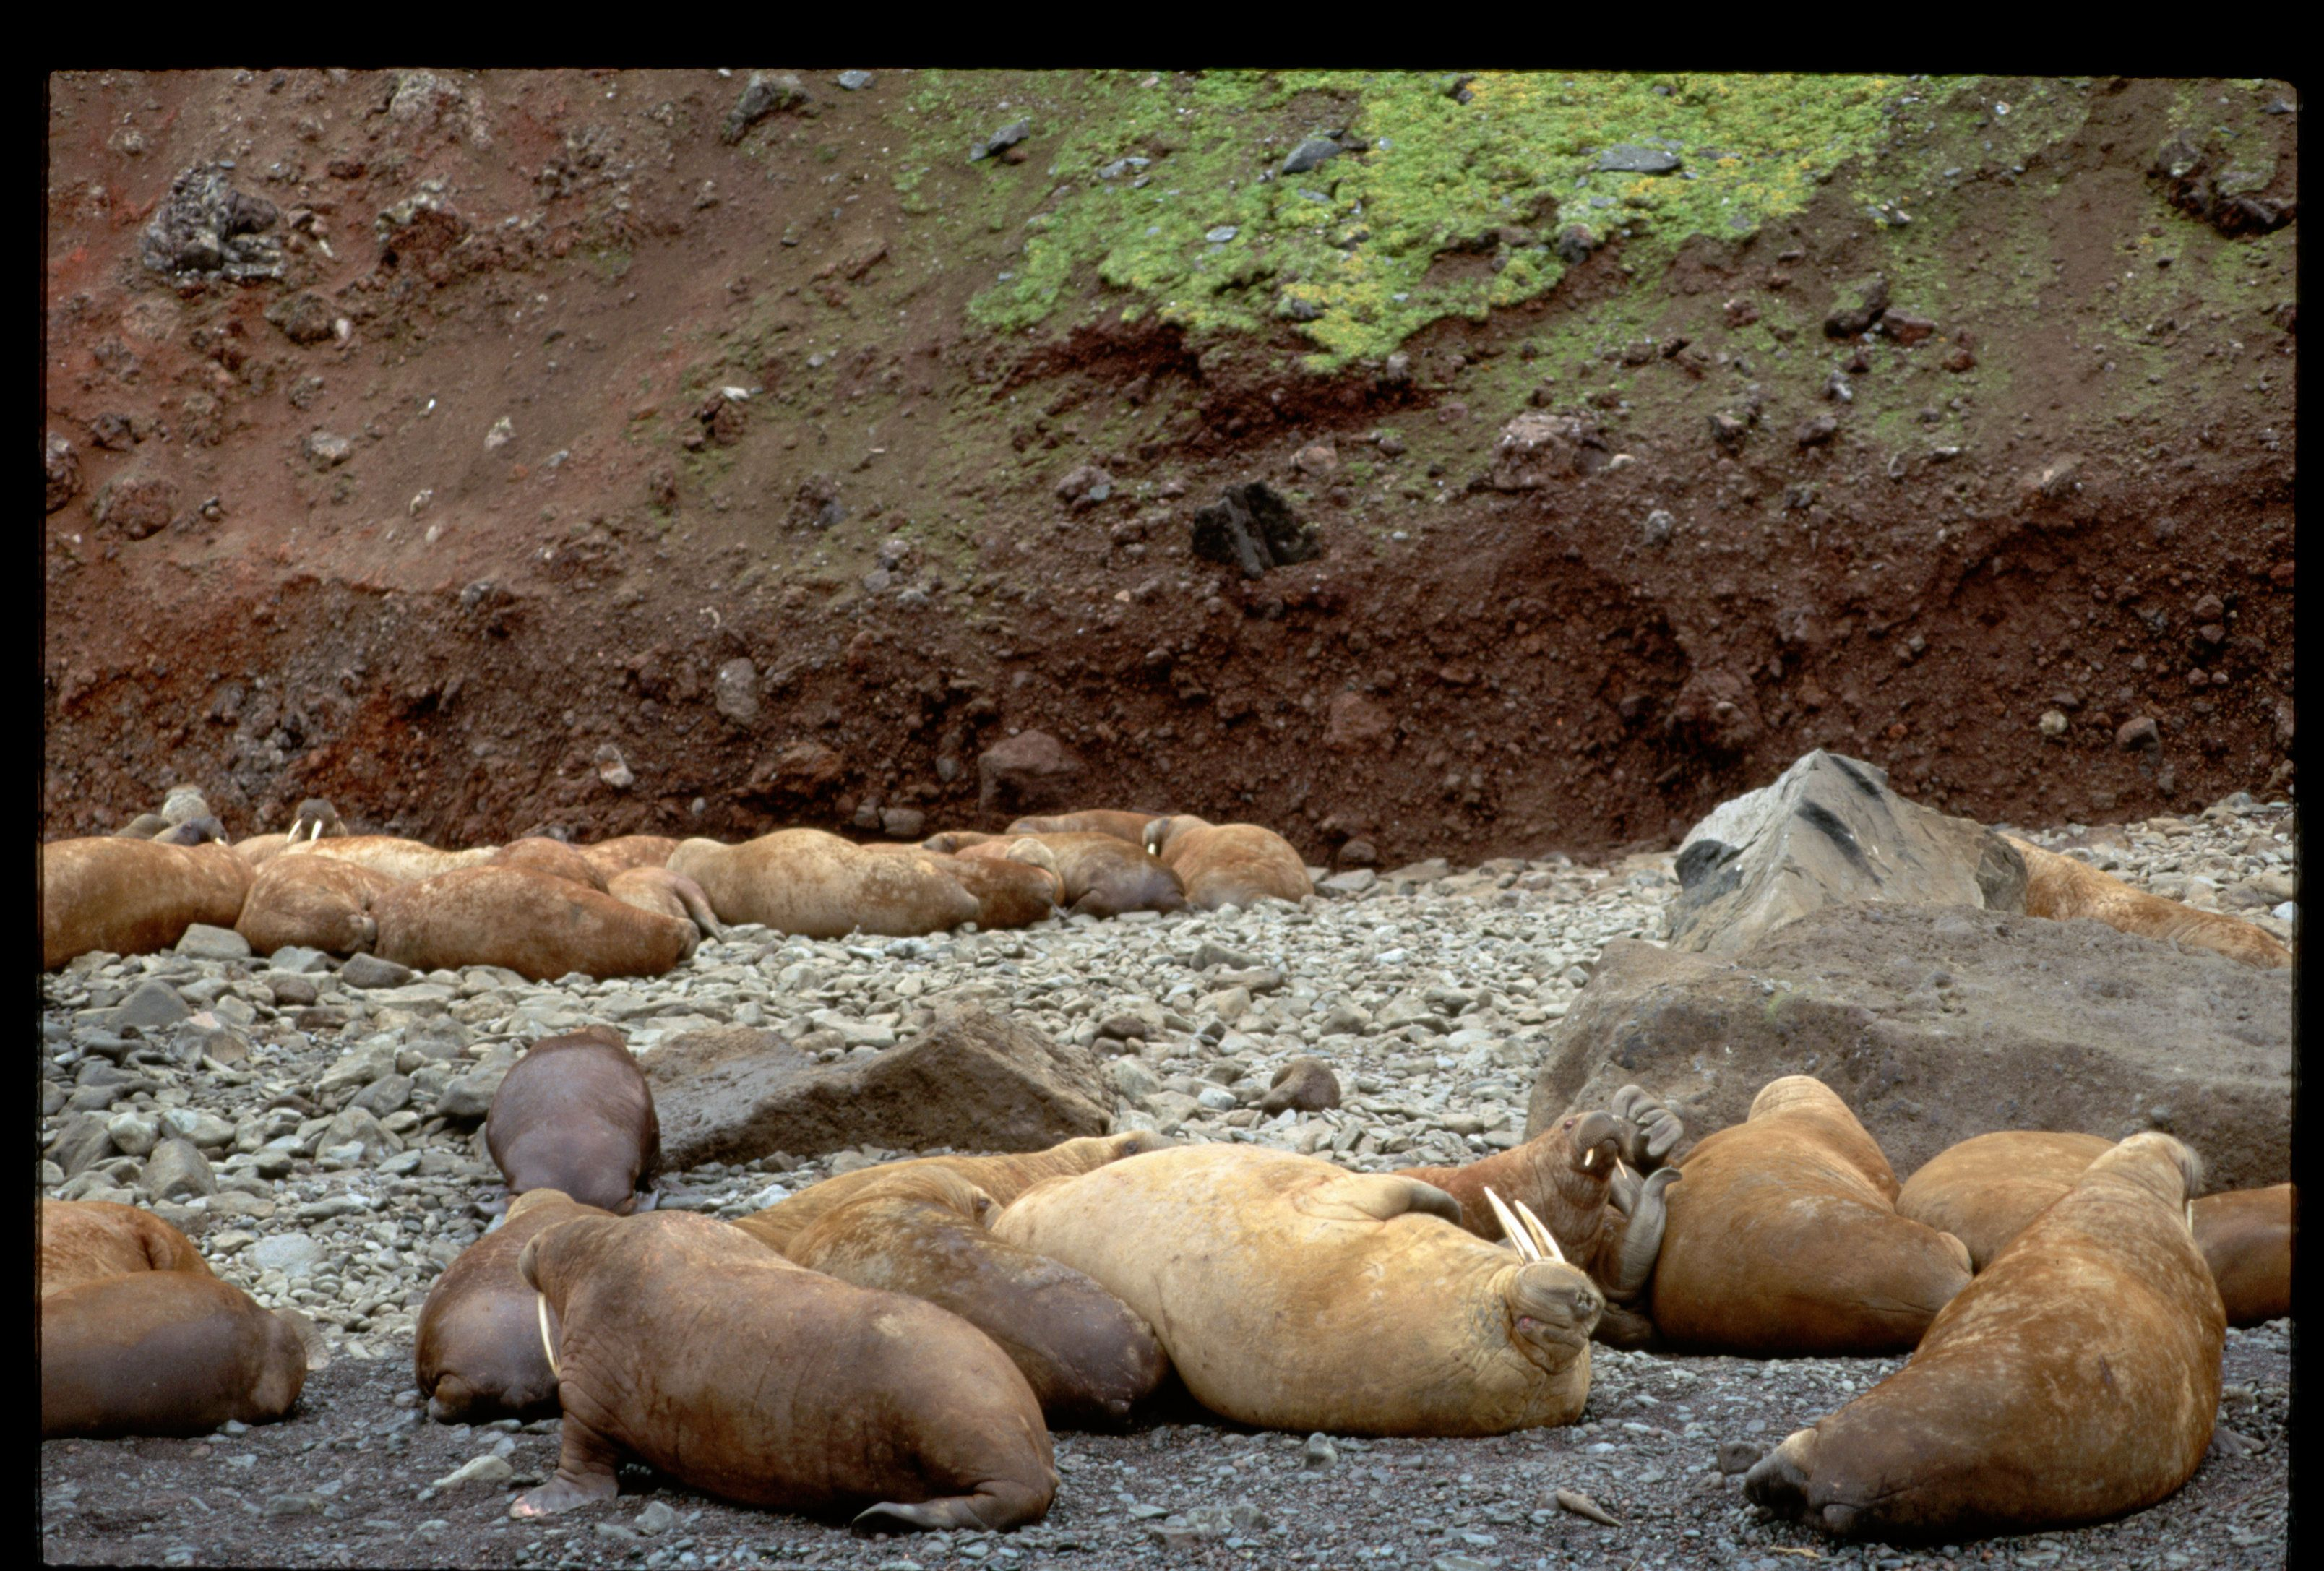 Pacific Walruses on Shore of Arakamchechen Island (Photo by Galen Rowell/Corbis via Getty Images)